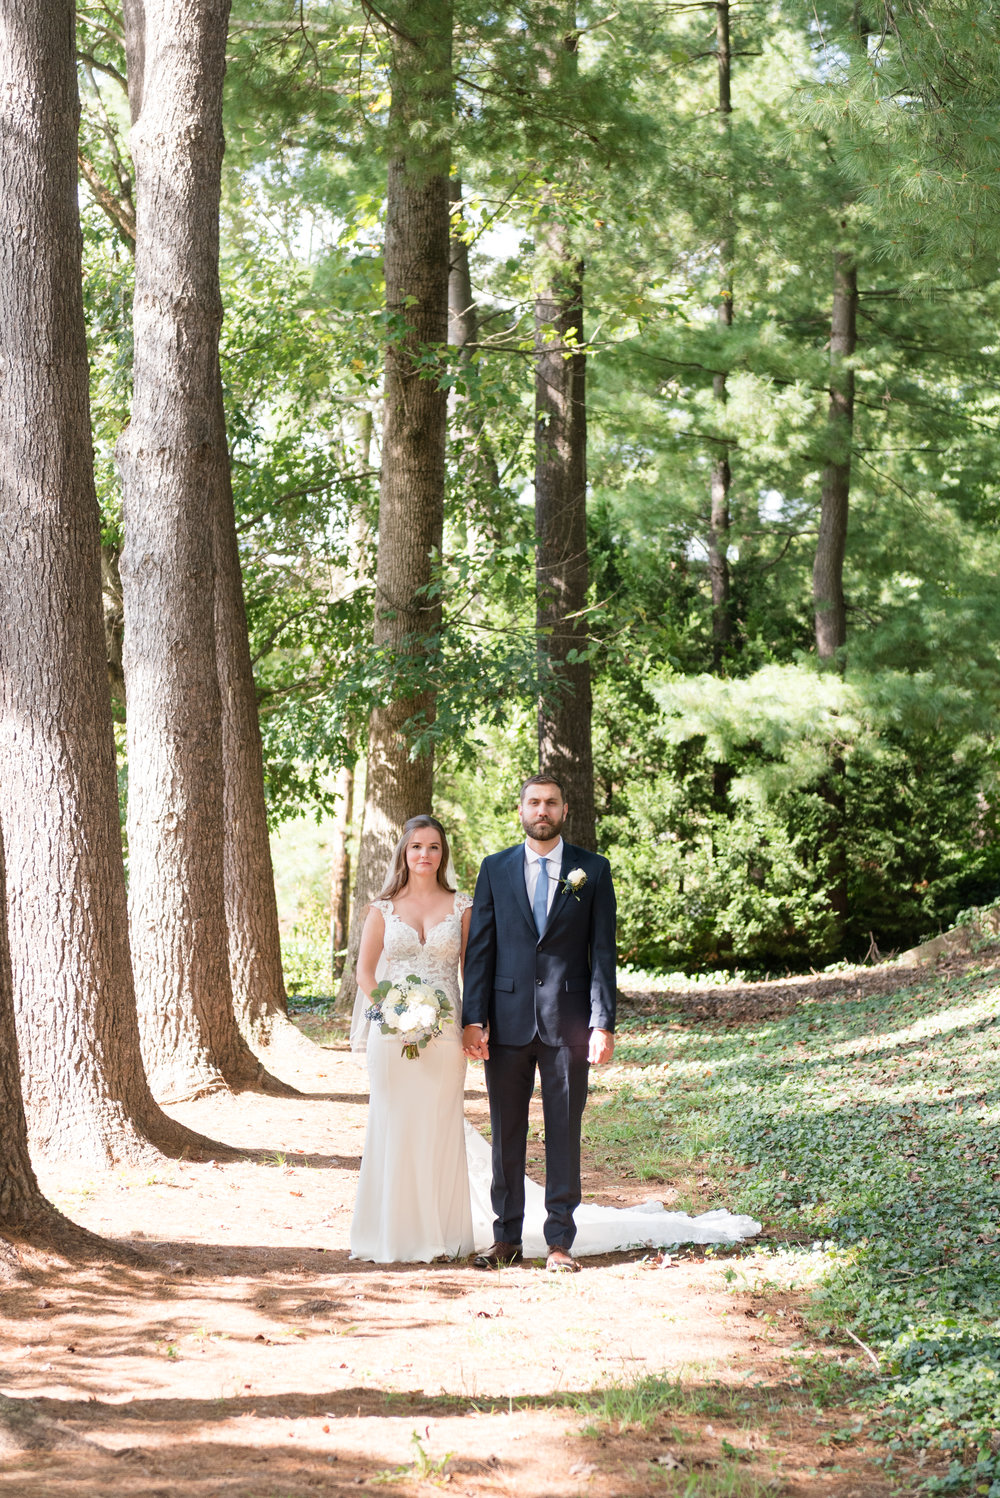 wedding-photographer-asheville-013.jpg